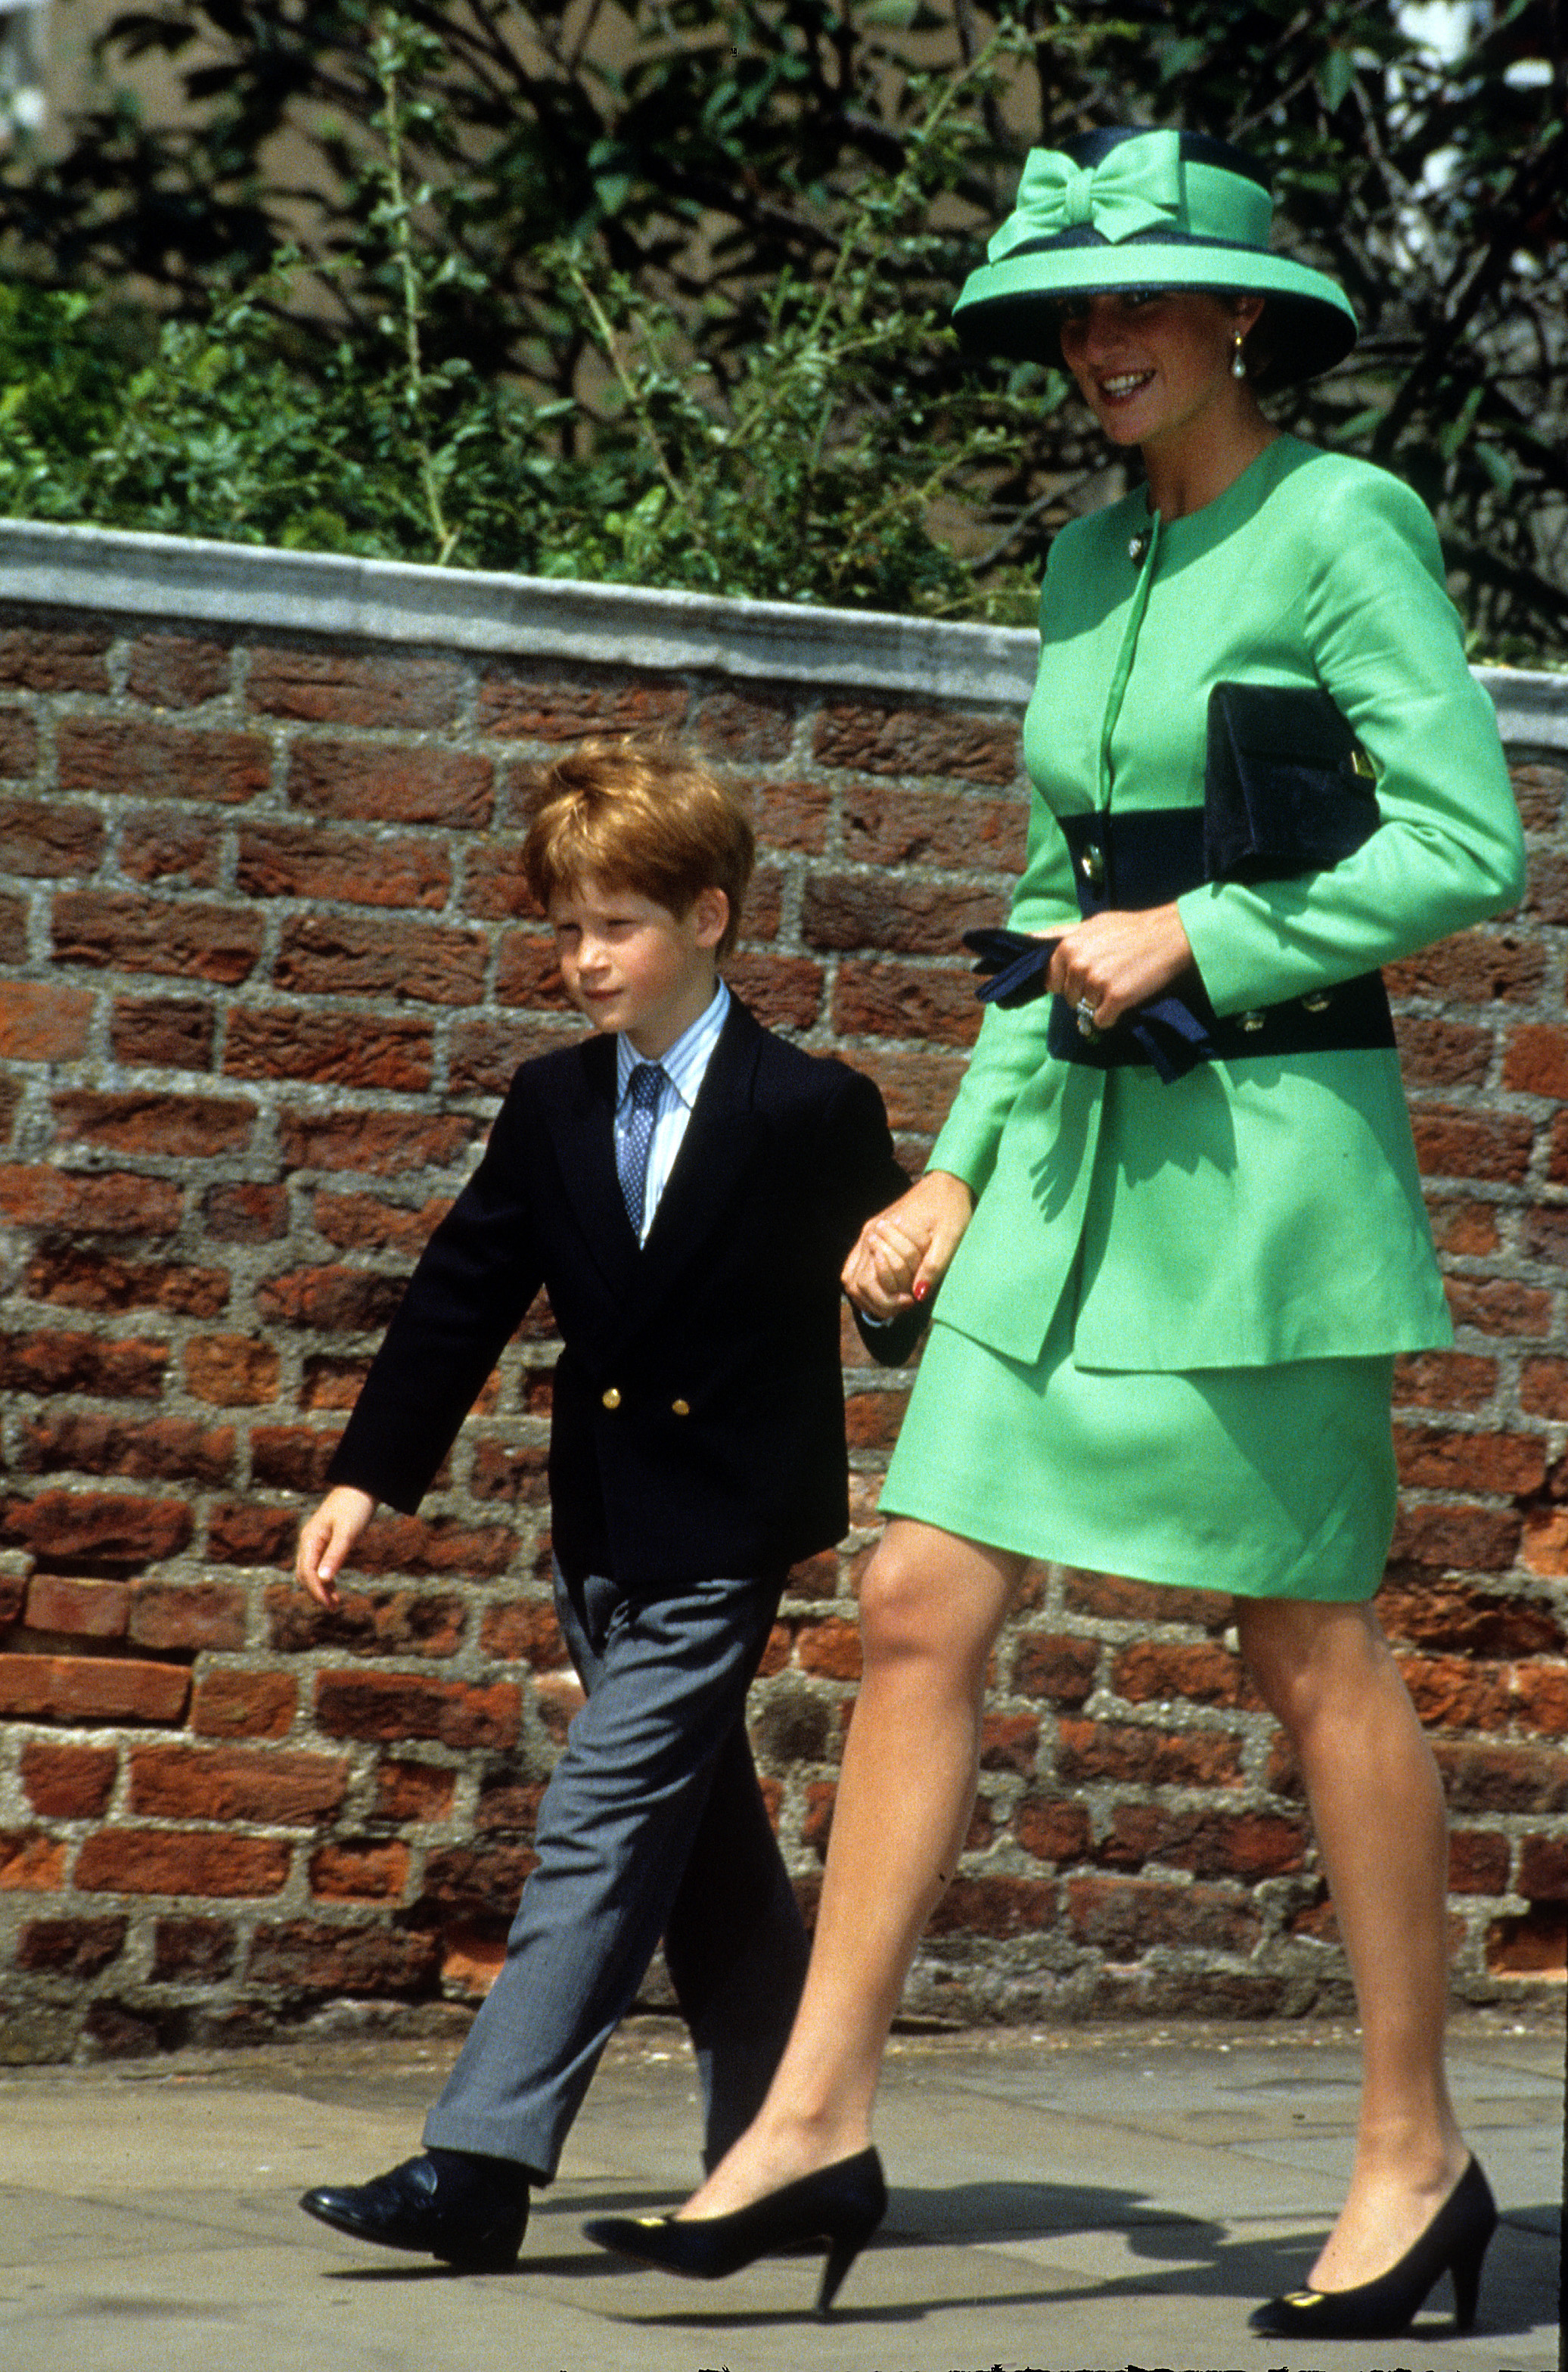 For the wedding of Lady Helen Windsor to Tim Taylor in 1992, Diana wore a bright green suit and a matching hat.